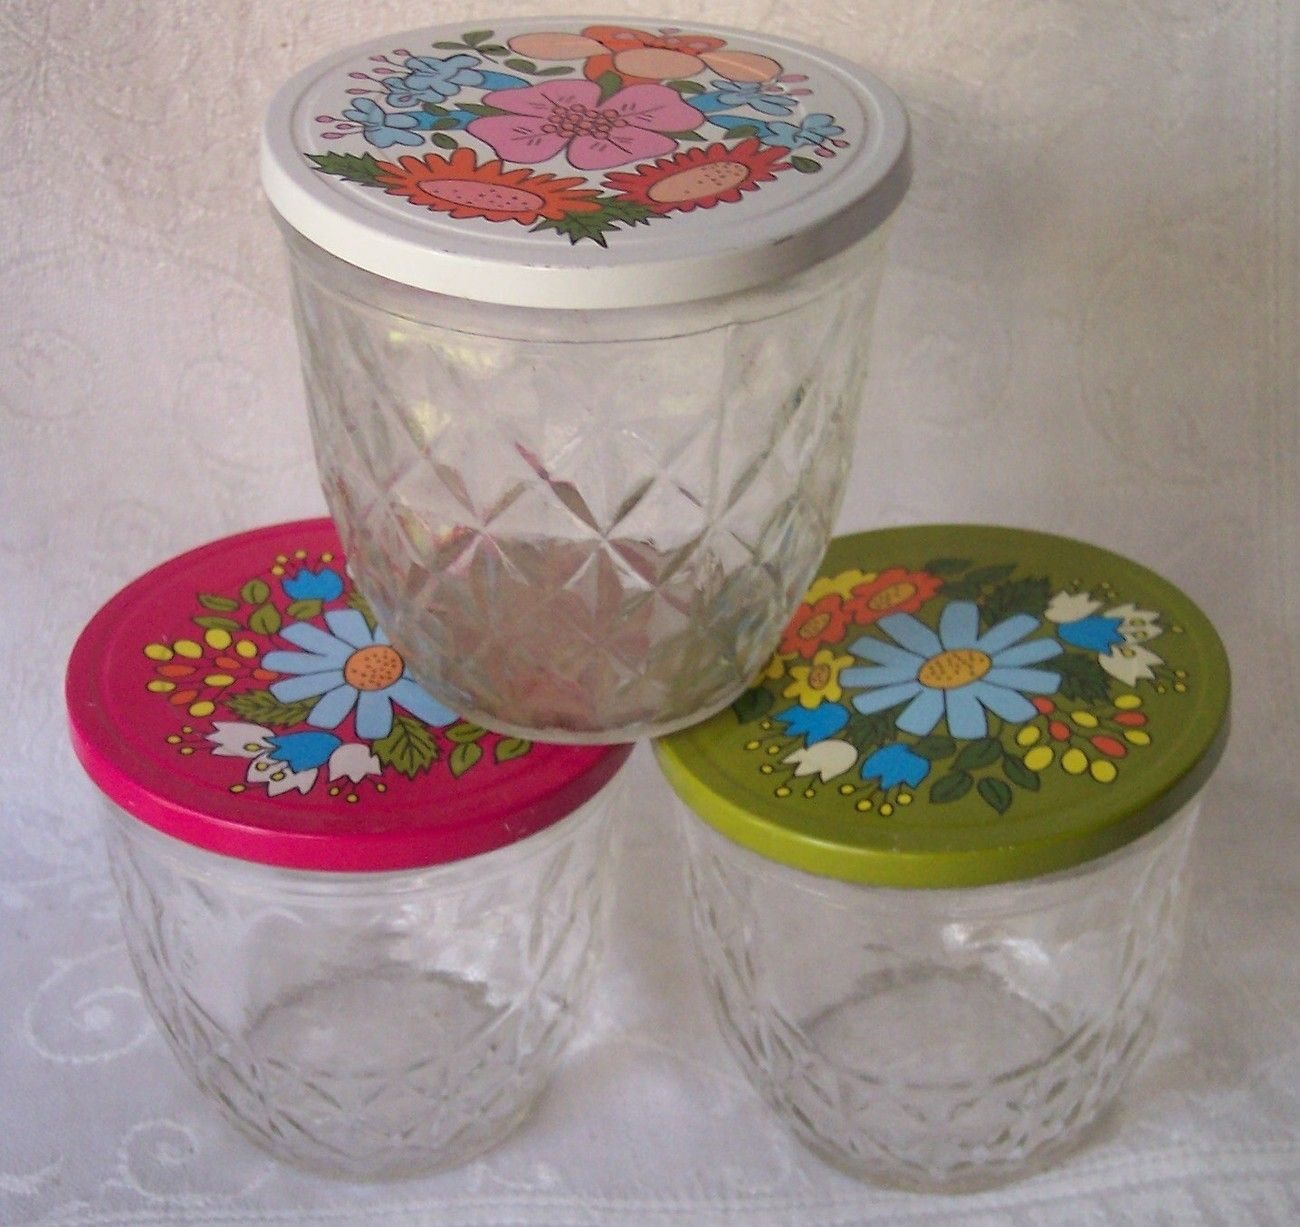 ball quilted crystal jelly jars and metal lids flower power ball quilted crystal jelly jars and metal lids flower power vintage set of 3